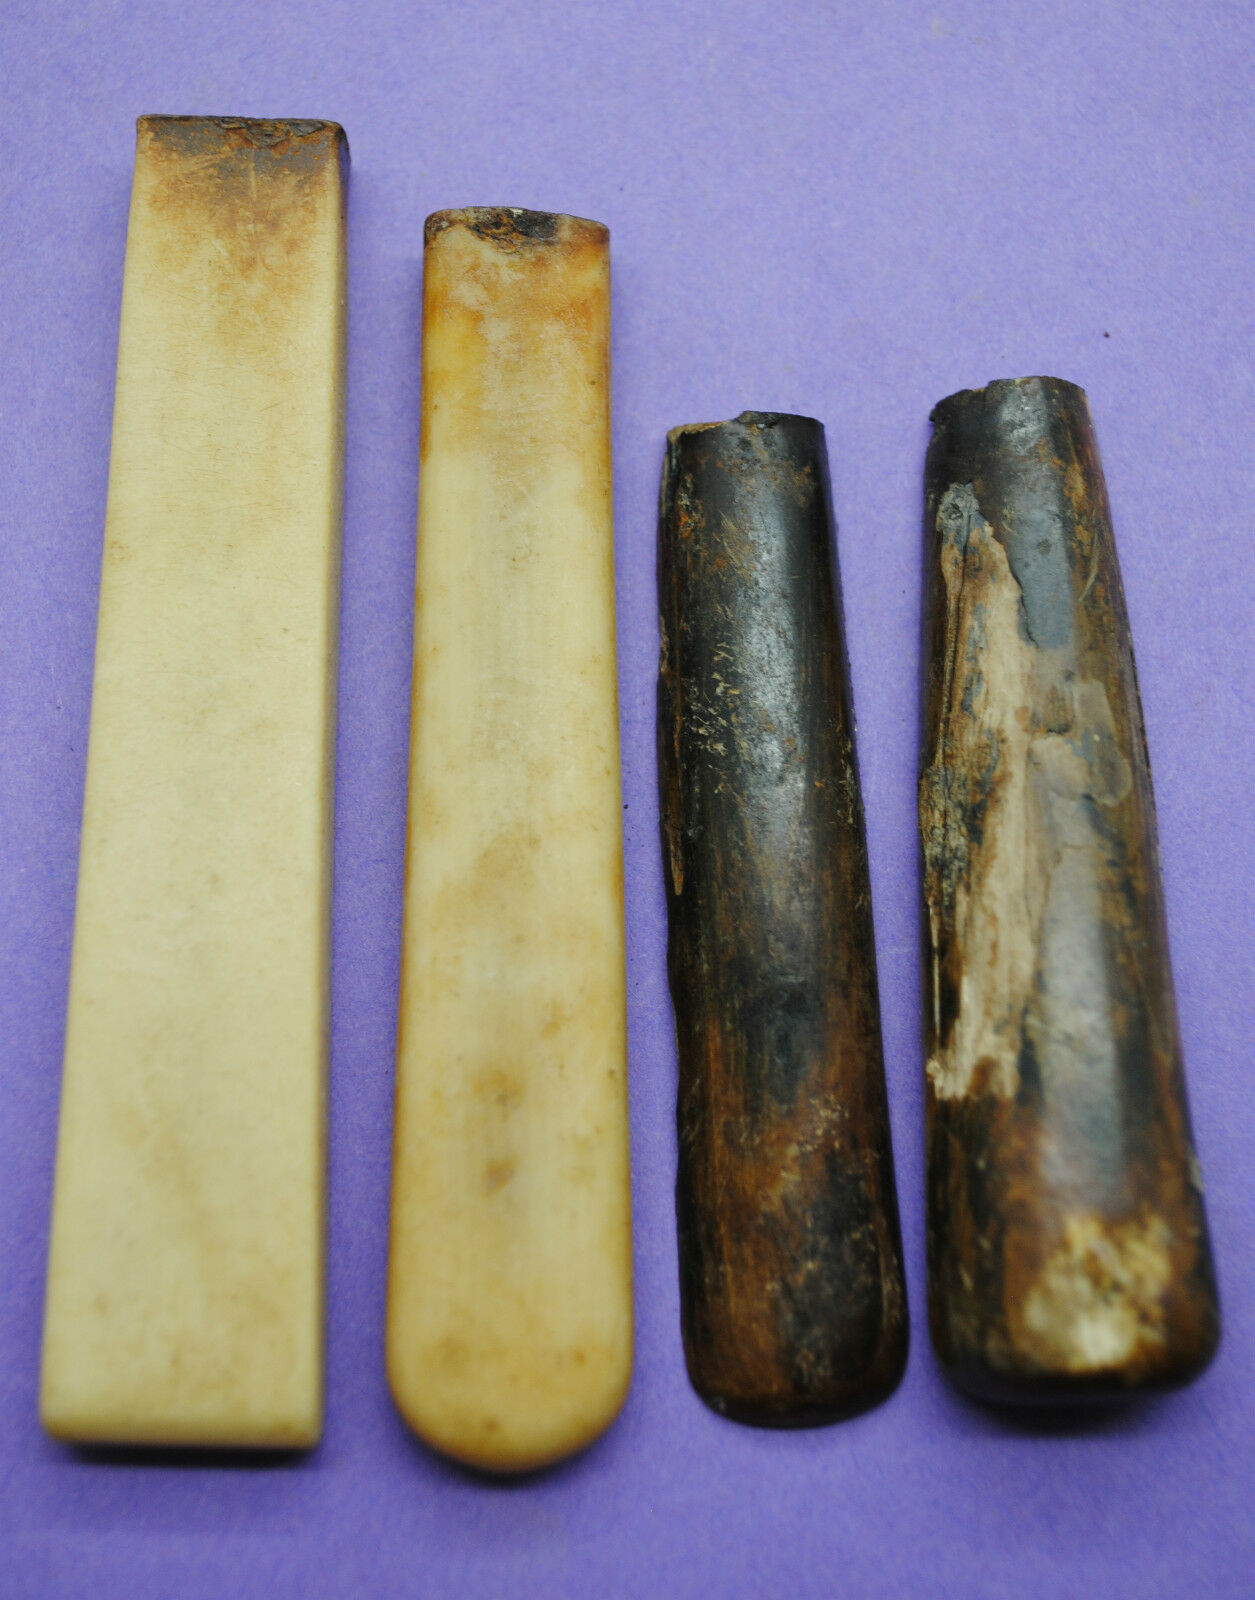 Group of 4 Medieval handles 15th century AD found on Thames foreshore